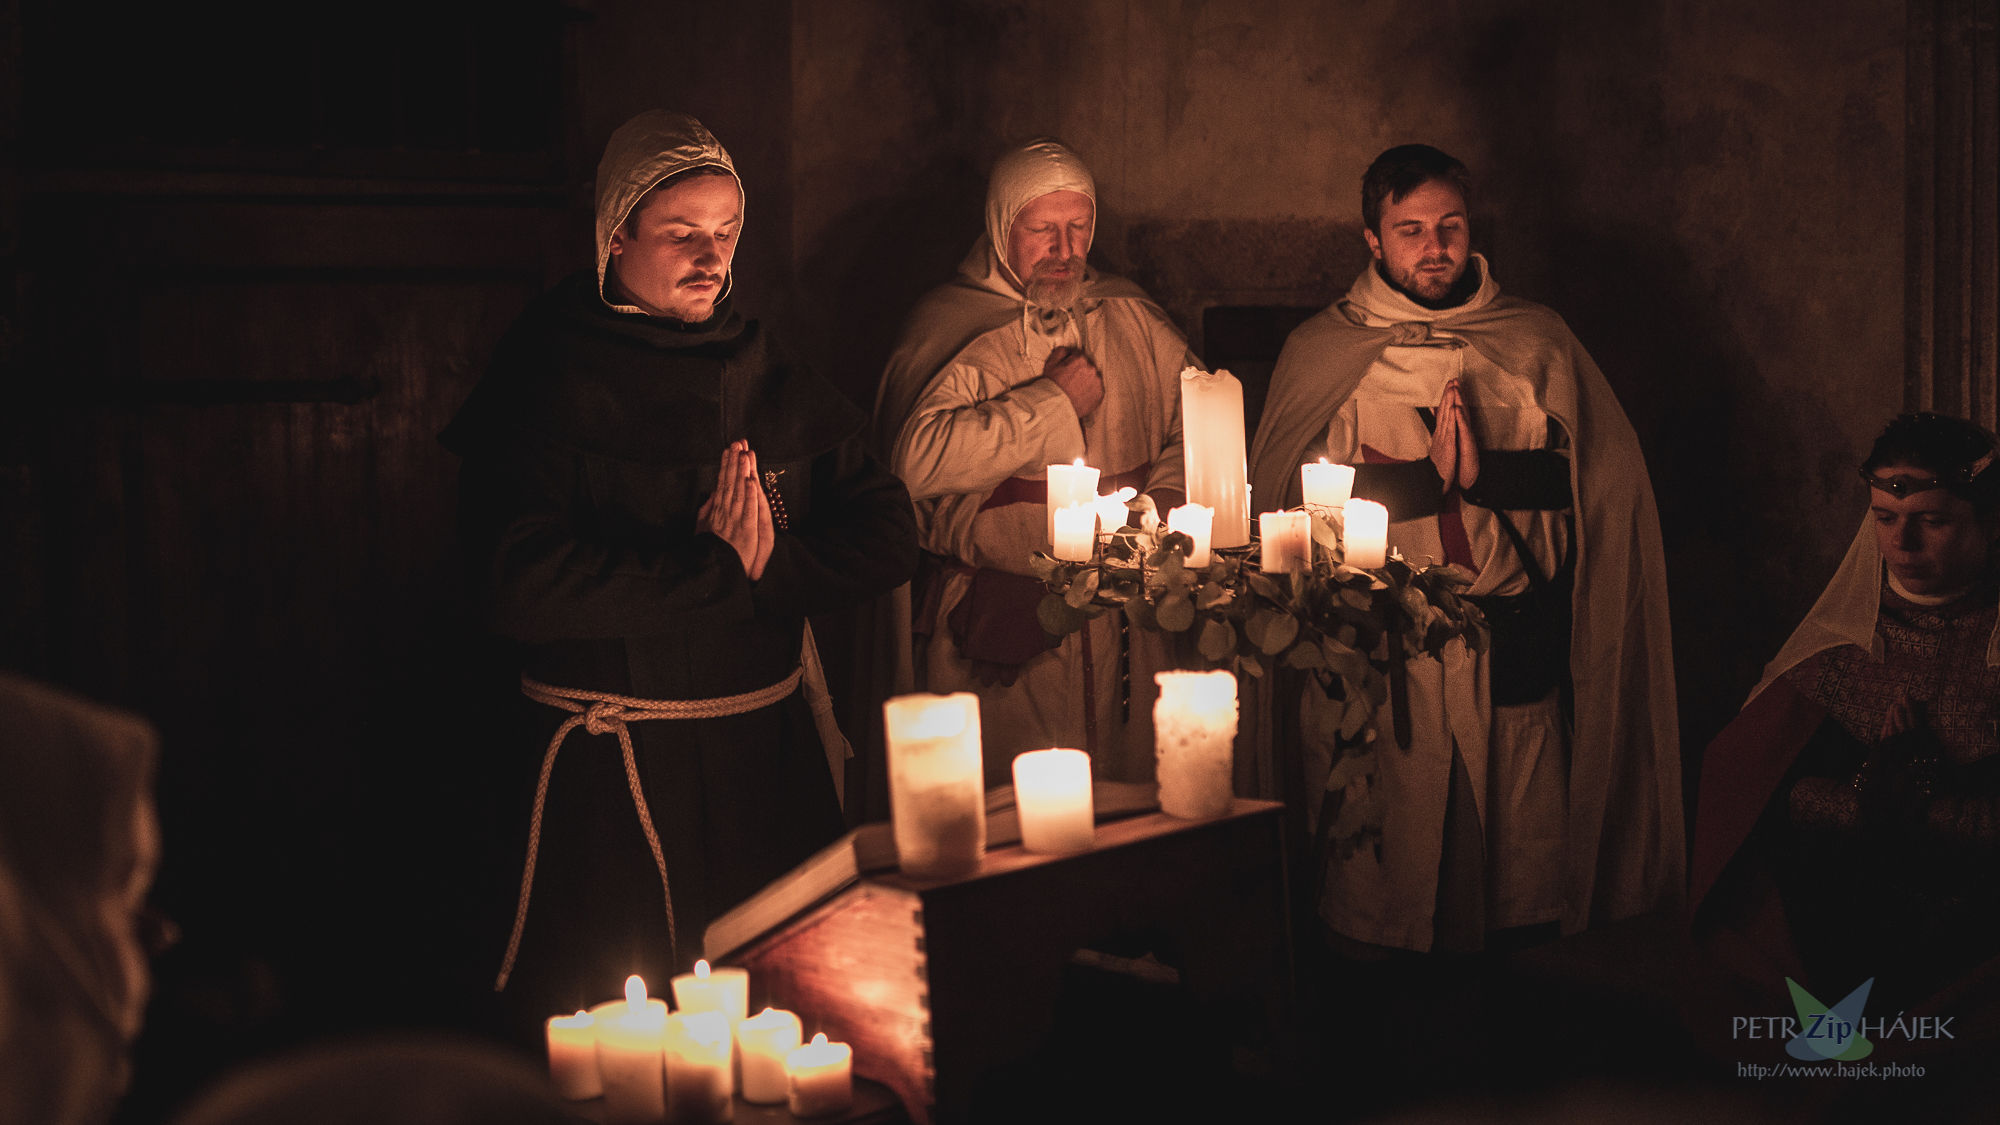 Strong experiences during the game - sung medieval worship